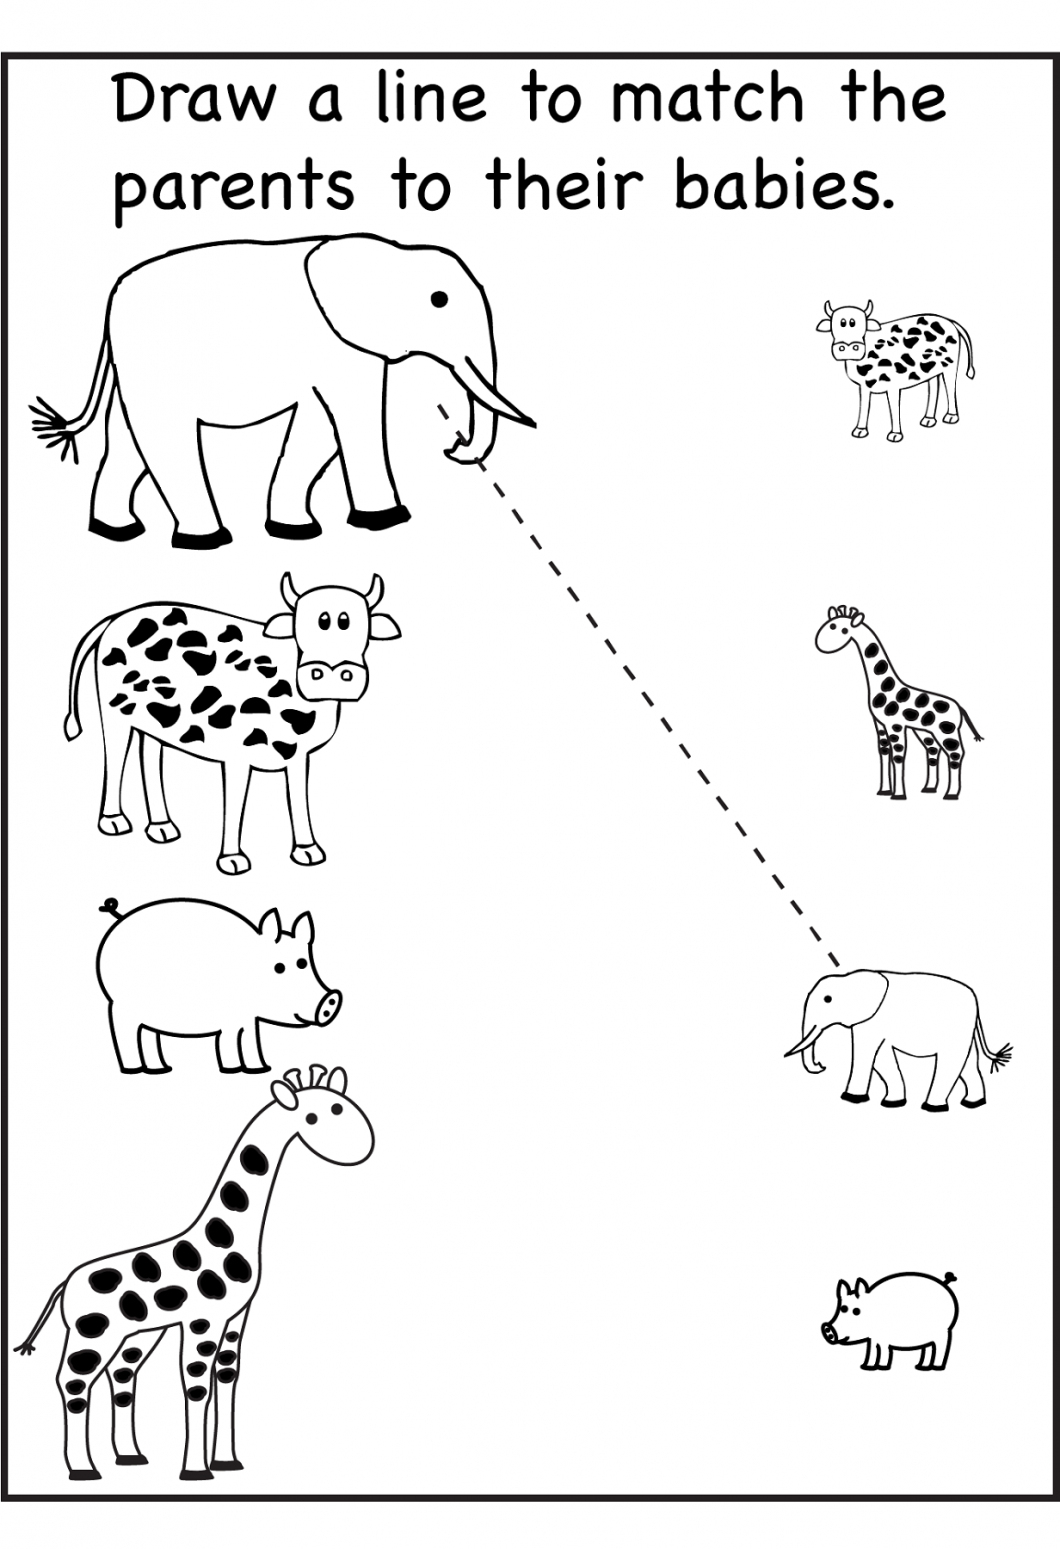 Free Printable Activity Sheets For Kids – With Fun Worksheets - Free Printable Activities For Preschoolers